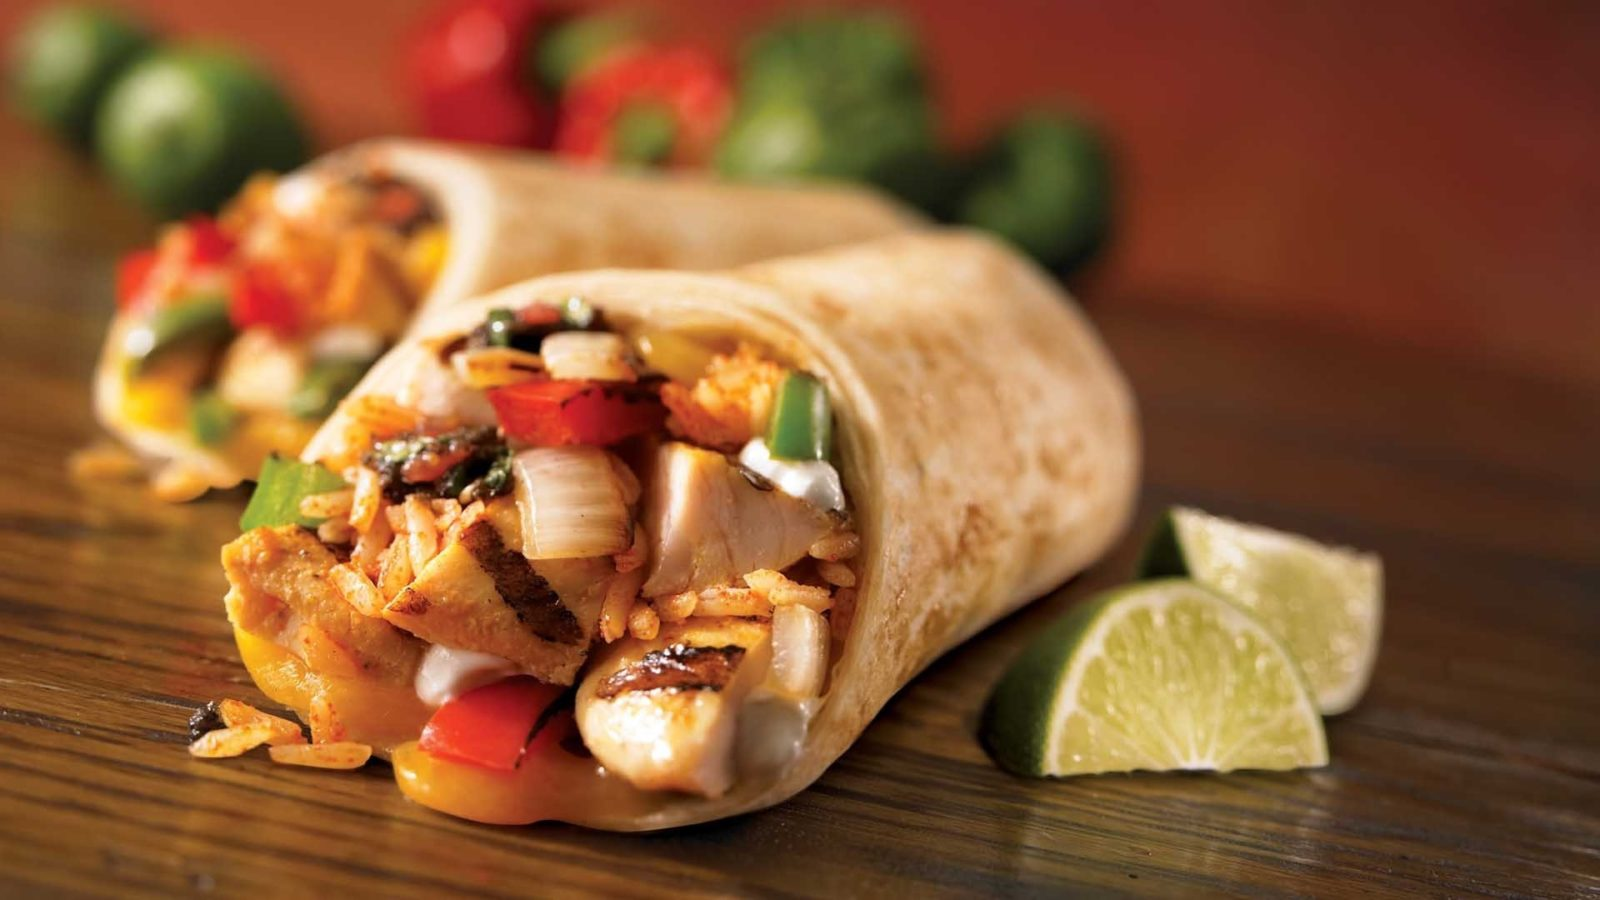 burrito-chicken-close-up